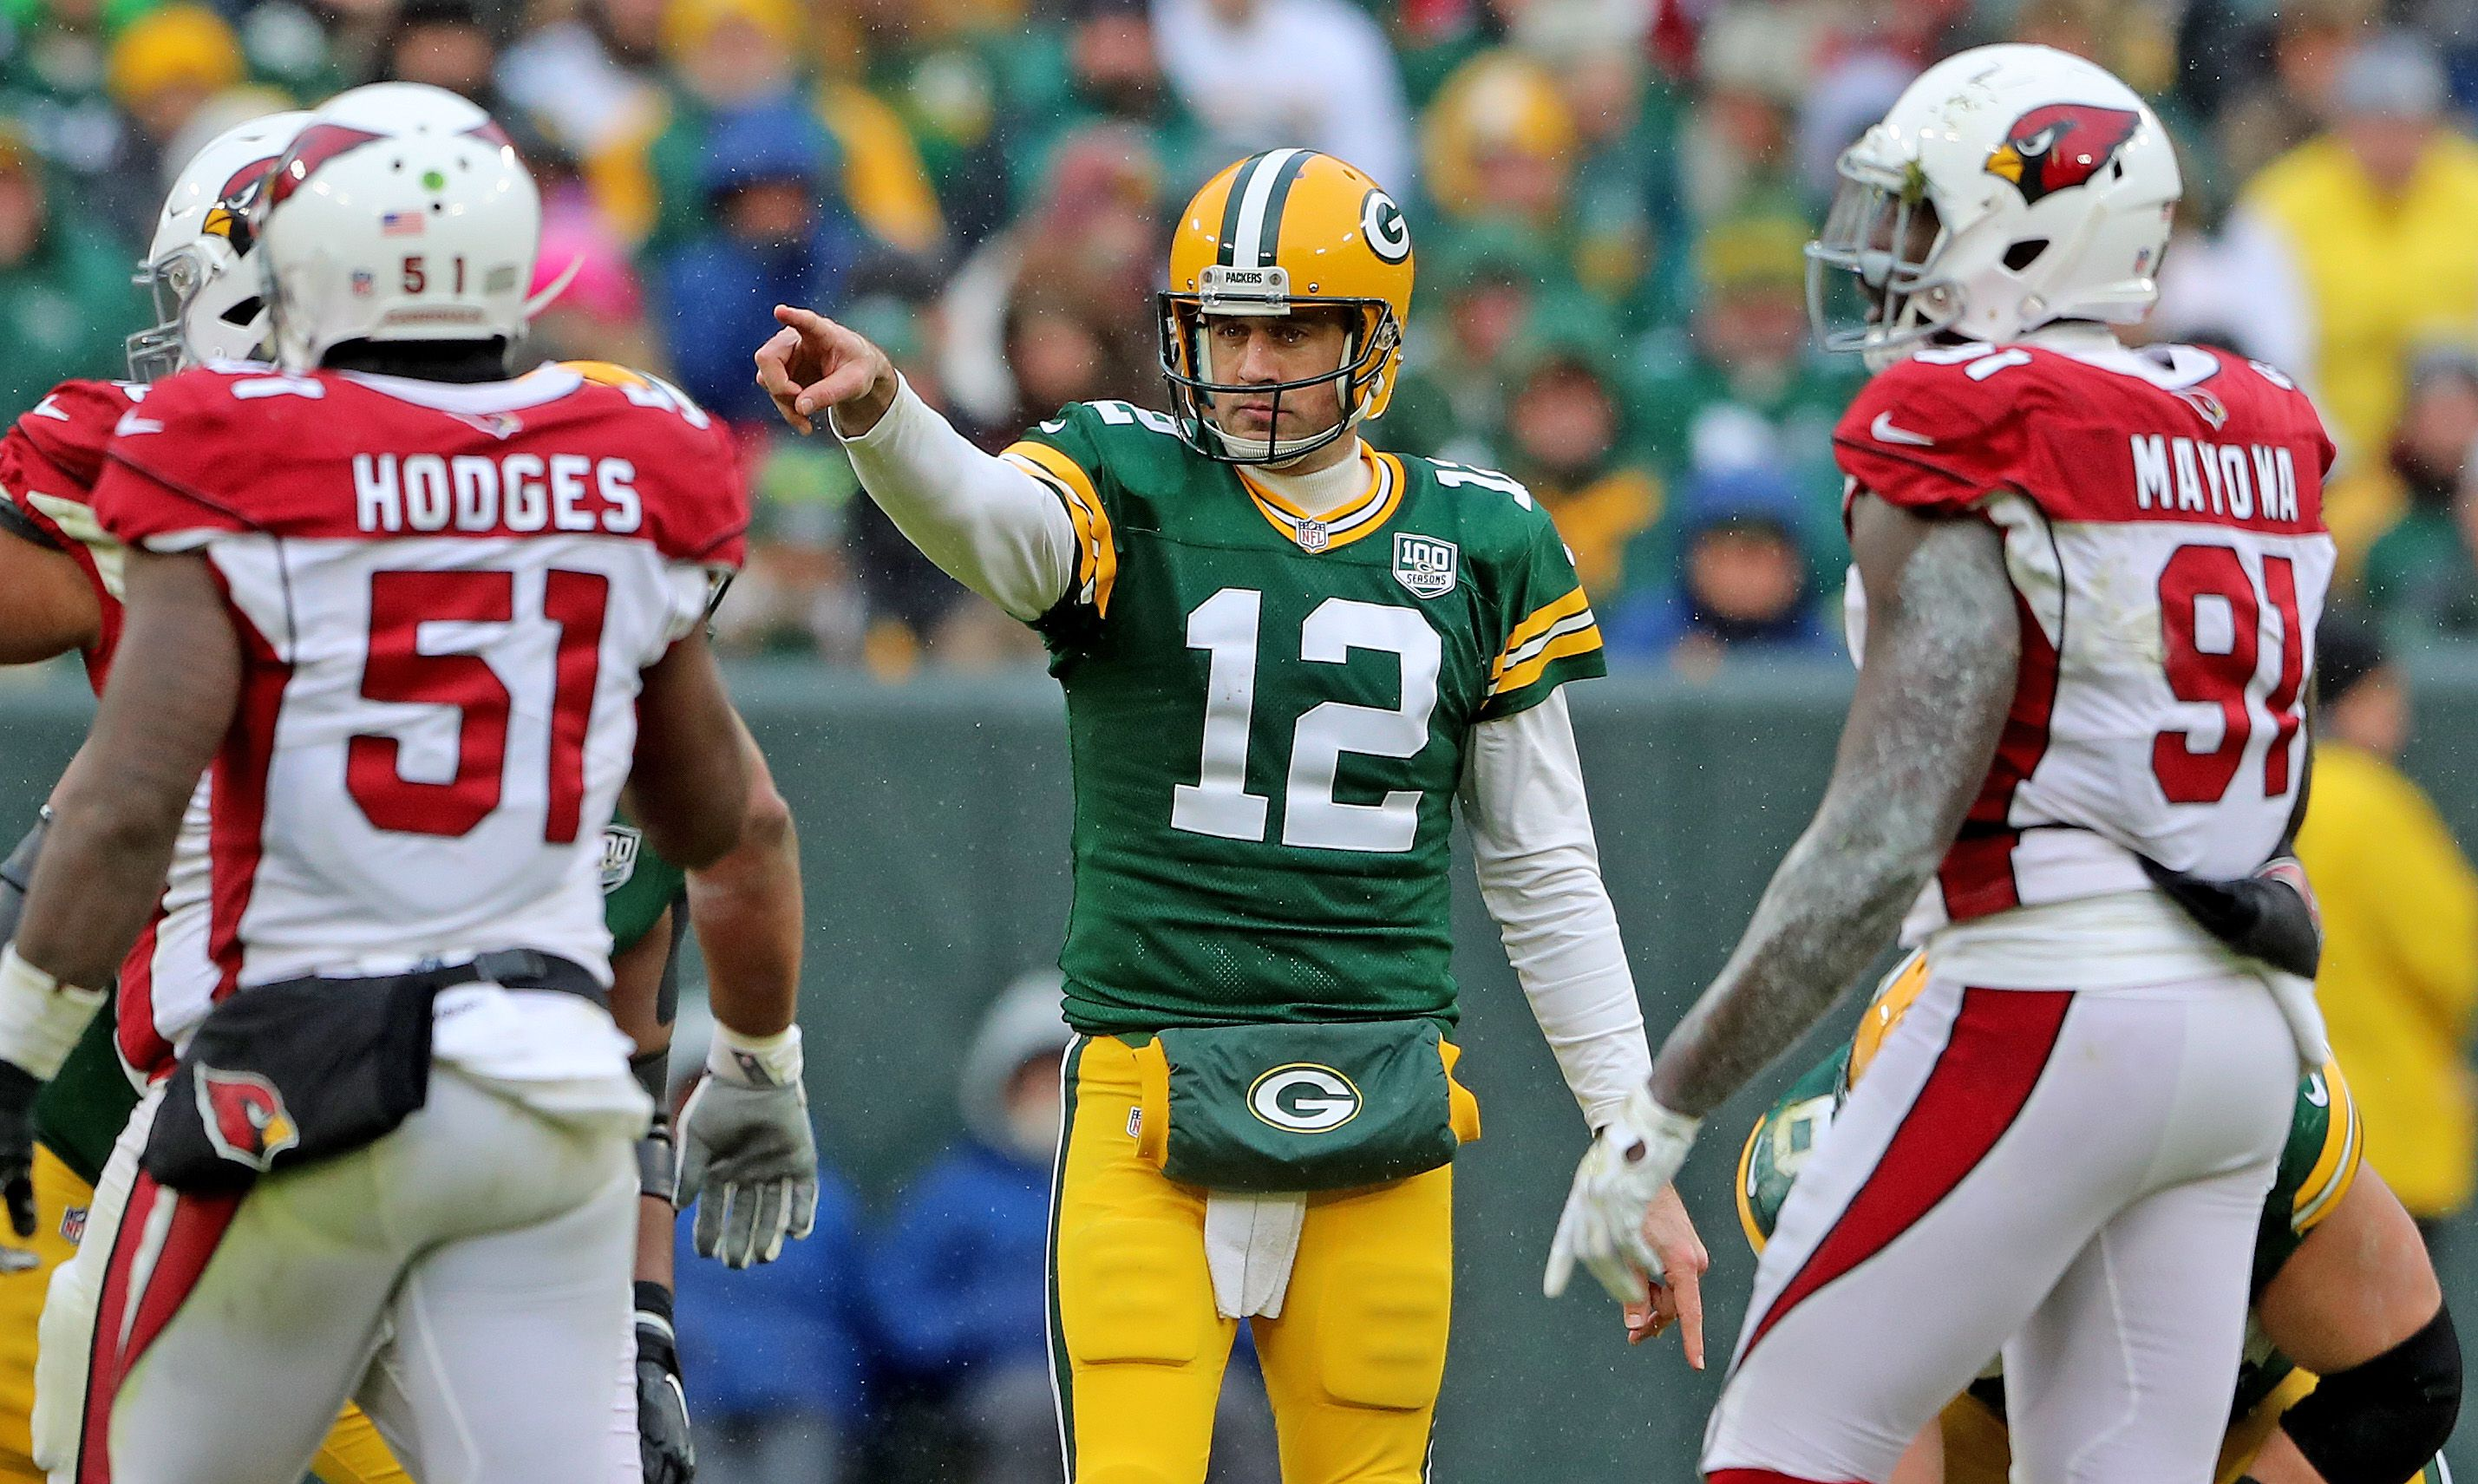 Six Key Factors That Will Determine the Winner of the Packers-Cardinals in Week 8